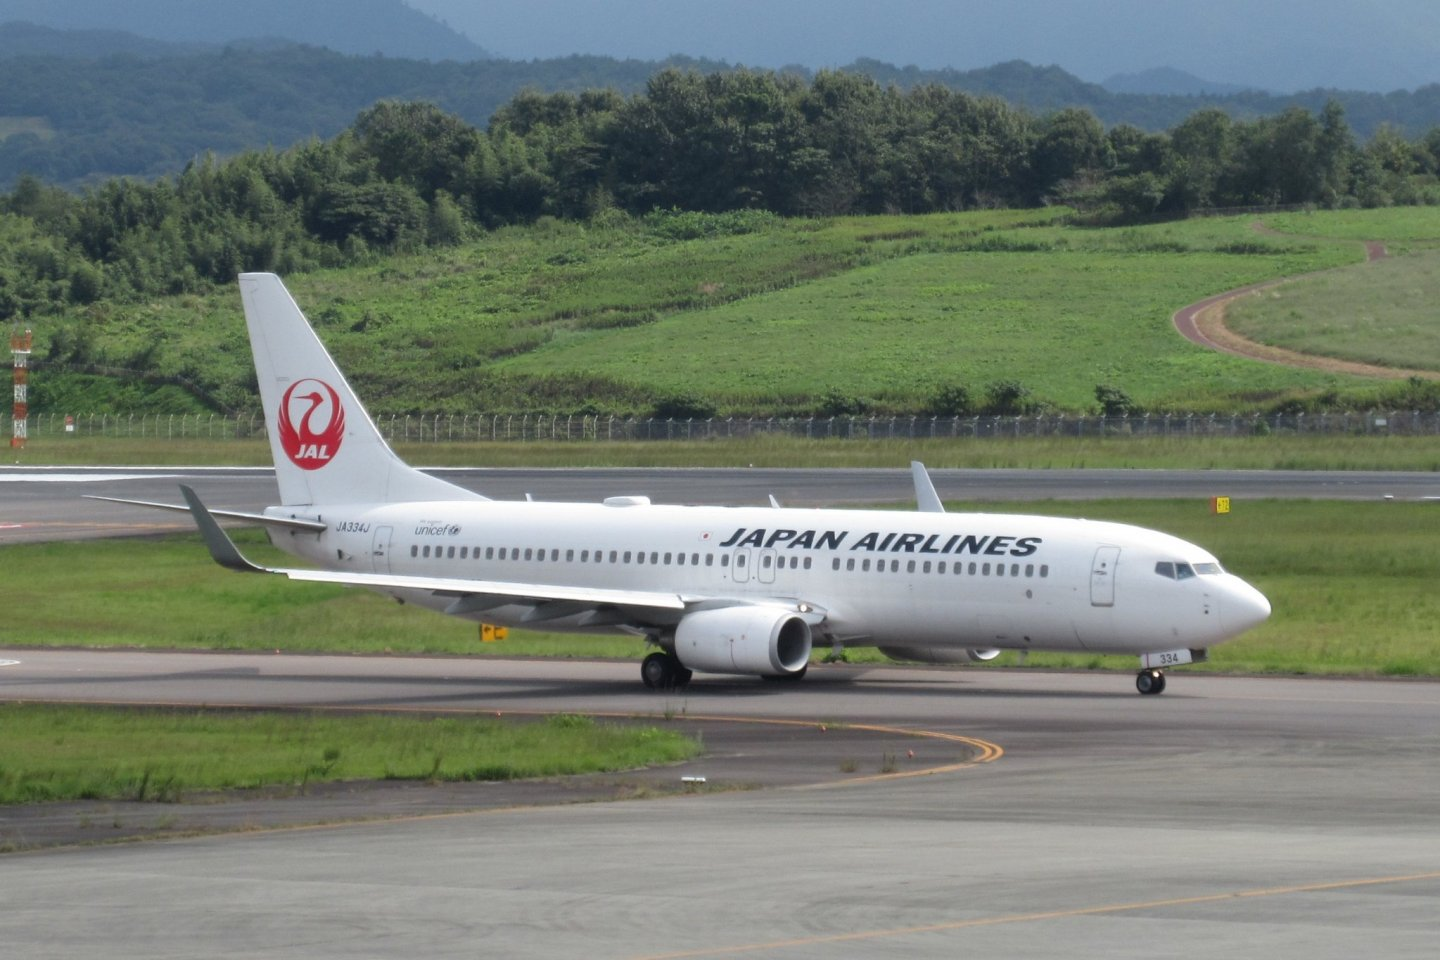 Takamatsu Airport is your gateway to exploring the beauty of Kagawa